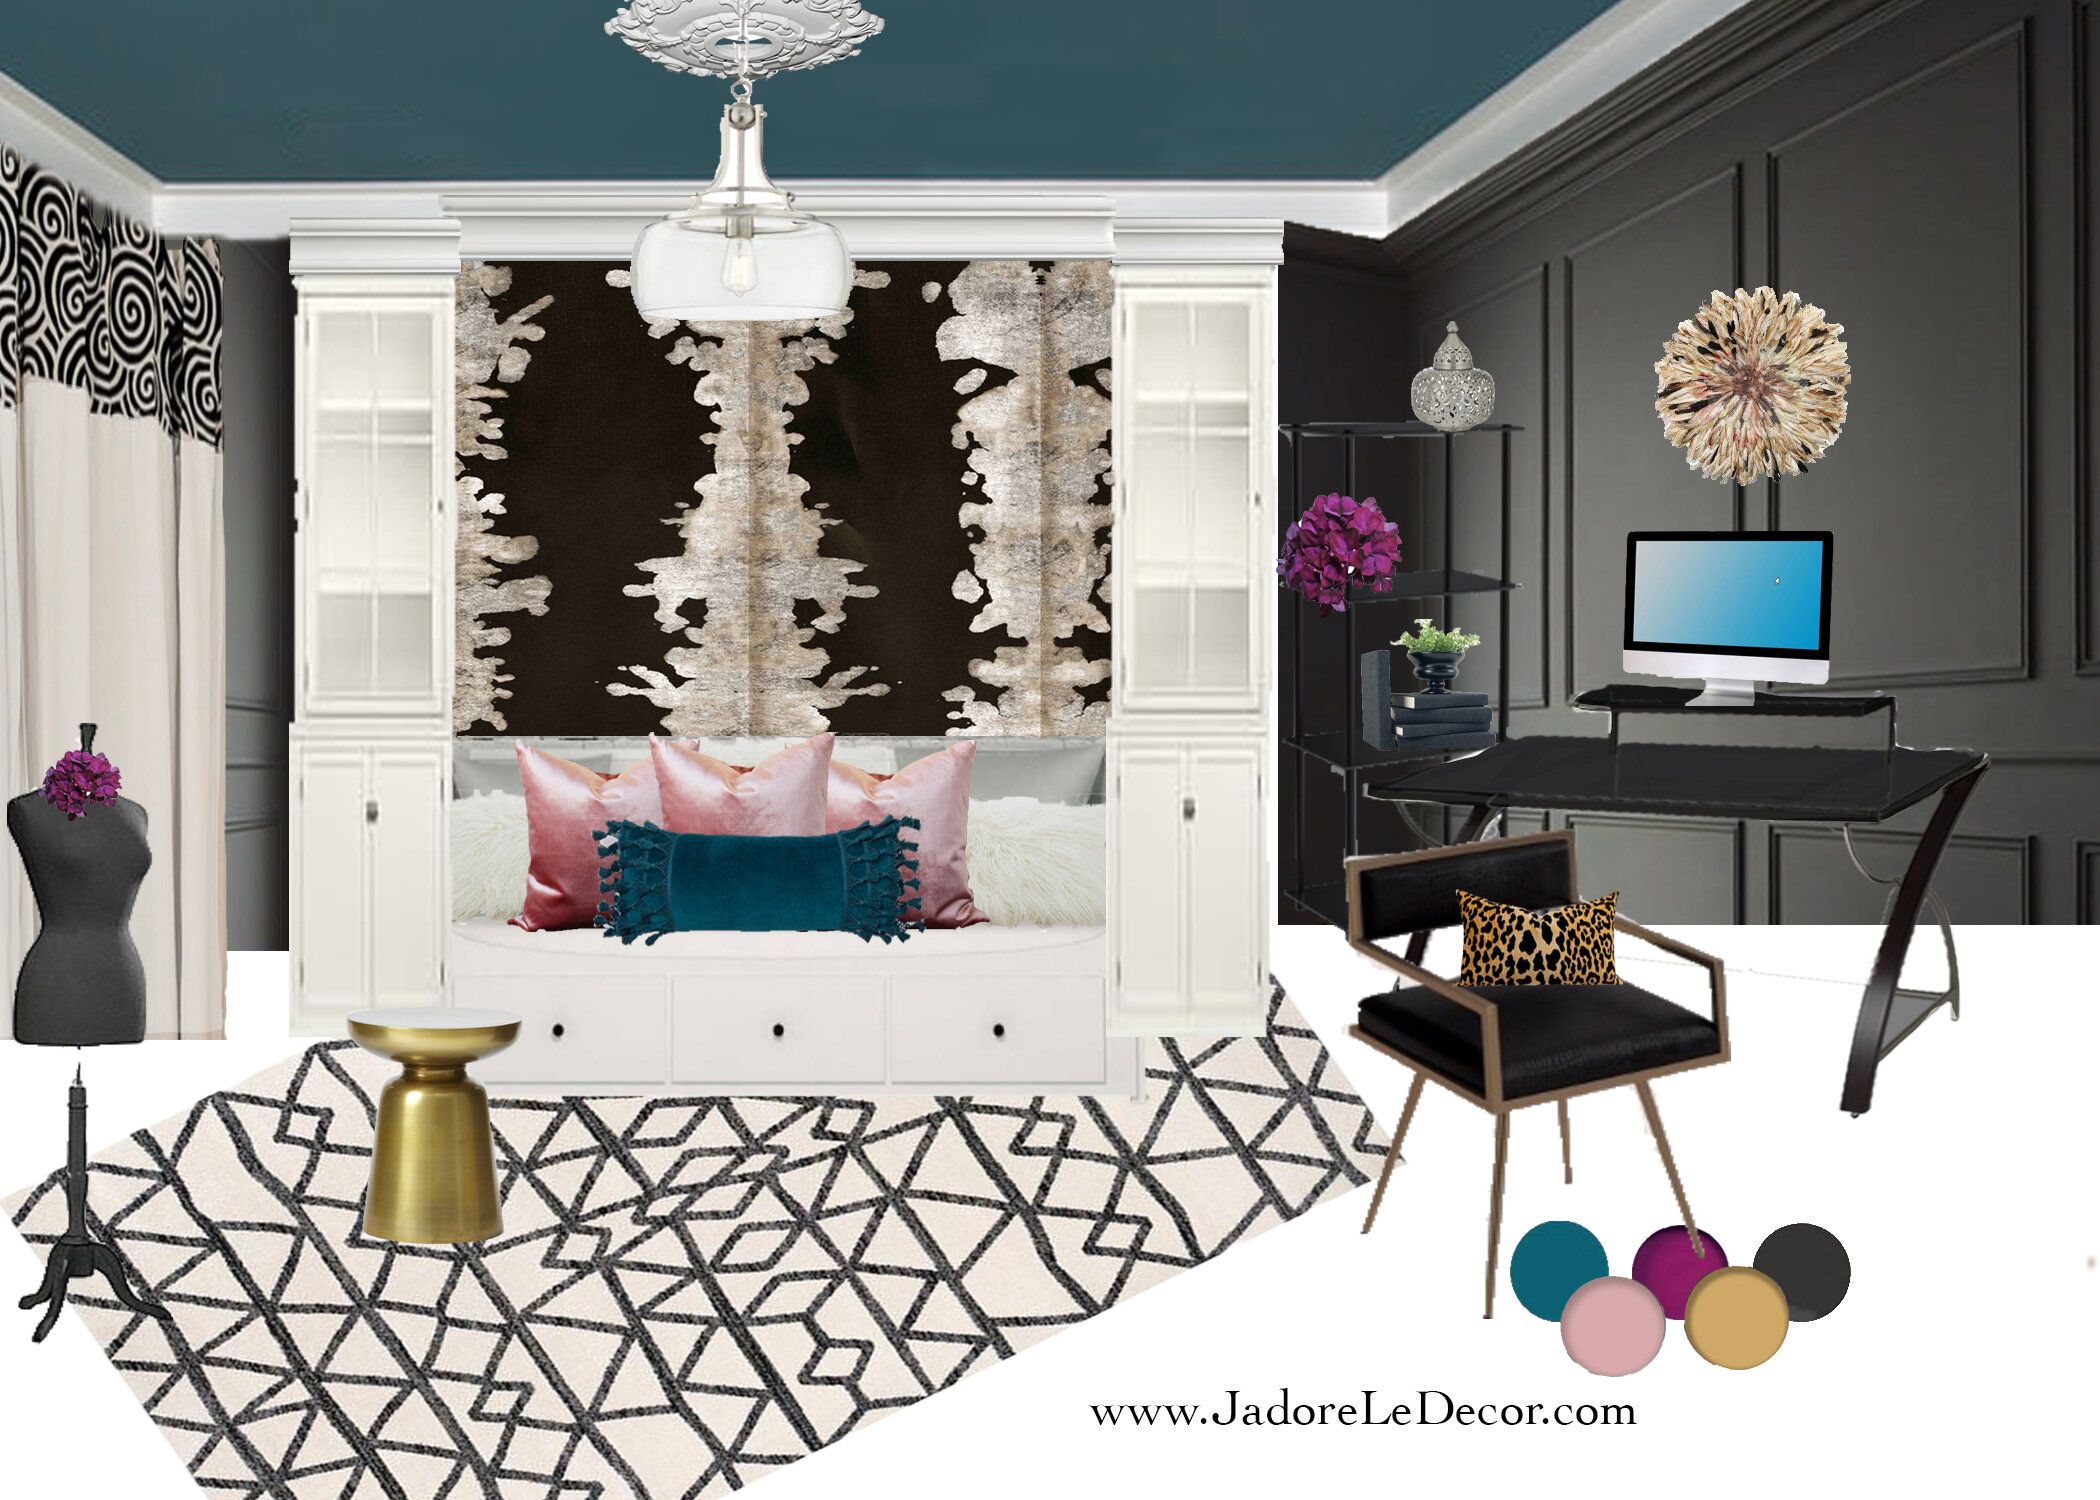 An Ikea Pax Hack How To Make 2 Stunning Built Ins From One Unit J Adore Le Decor